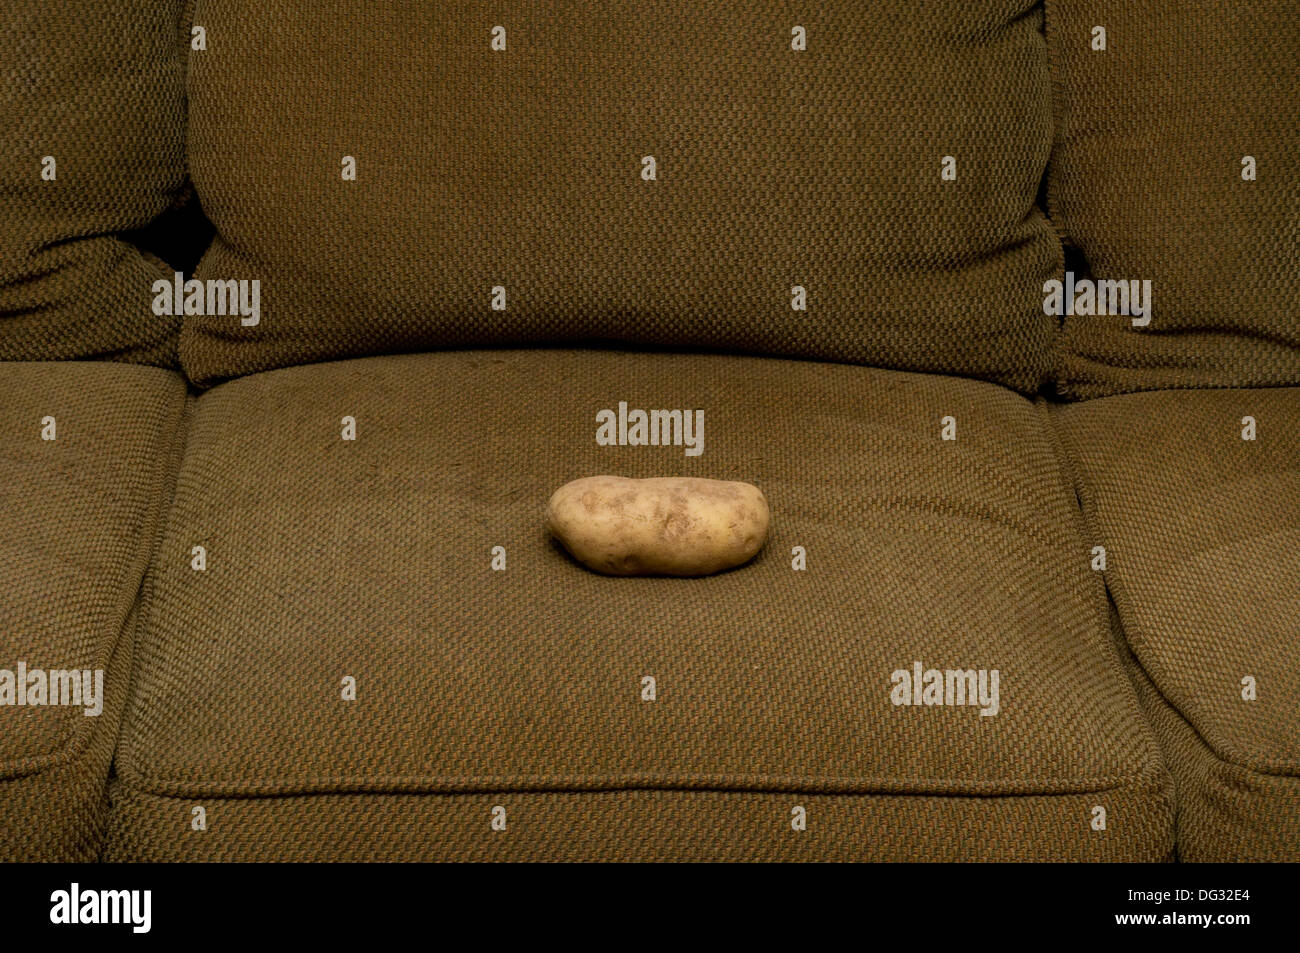 conceptual image - couch potato - Stock Image